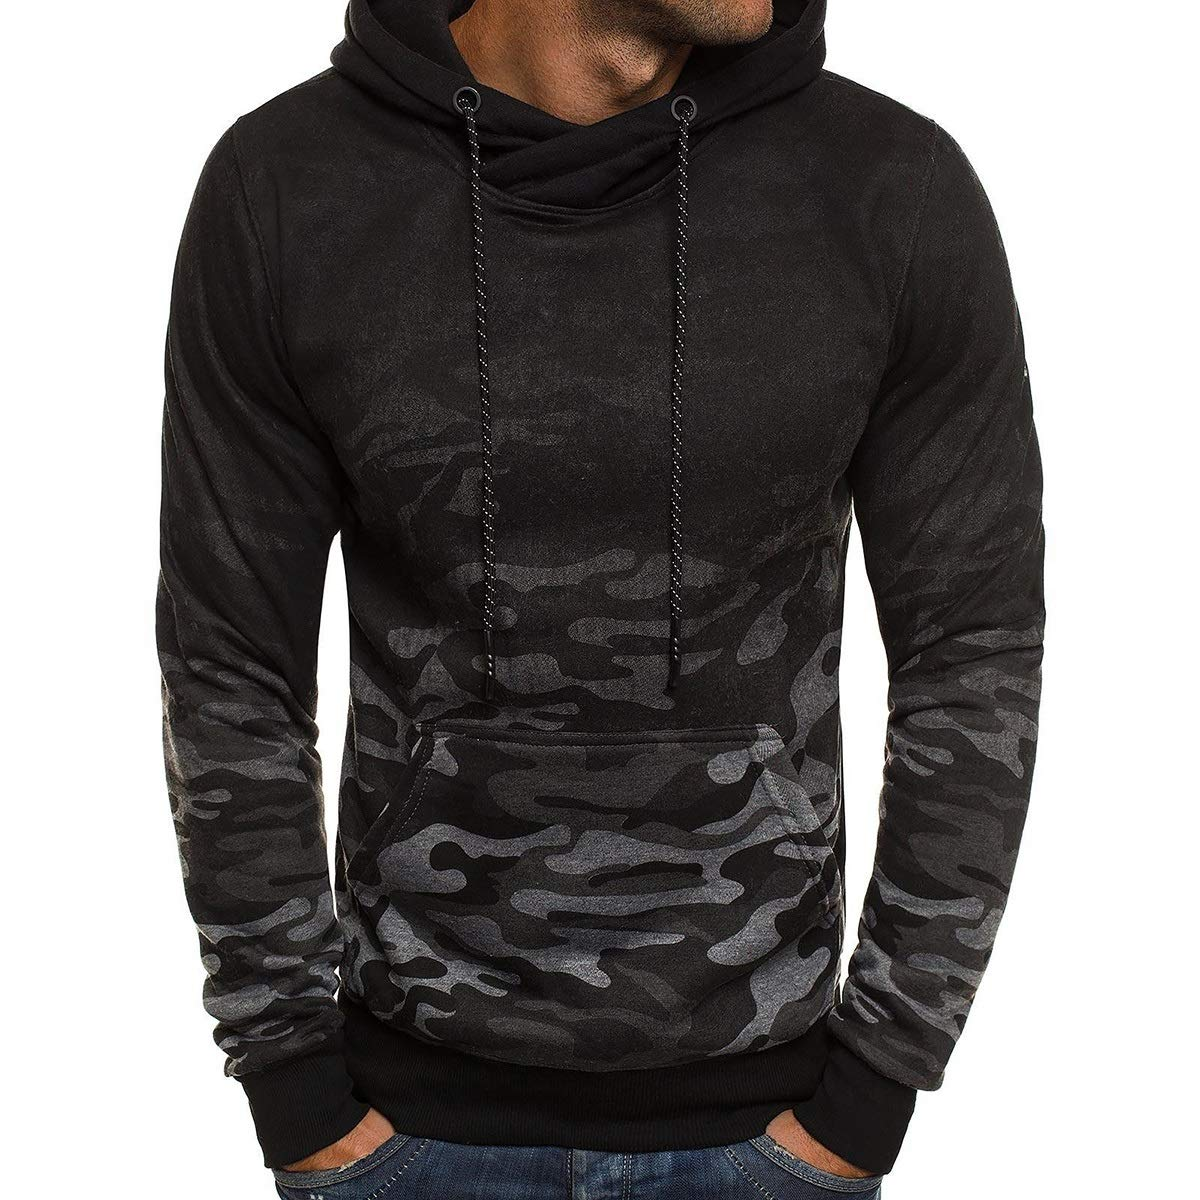 Men Autumn Winter Classical Gradient Ramp Long Sleeve Hooded Hoodie Casual Sweatshirt Outwear Top